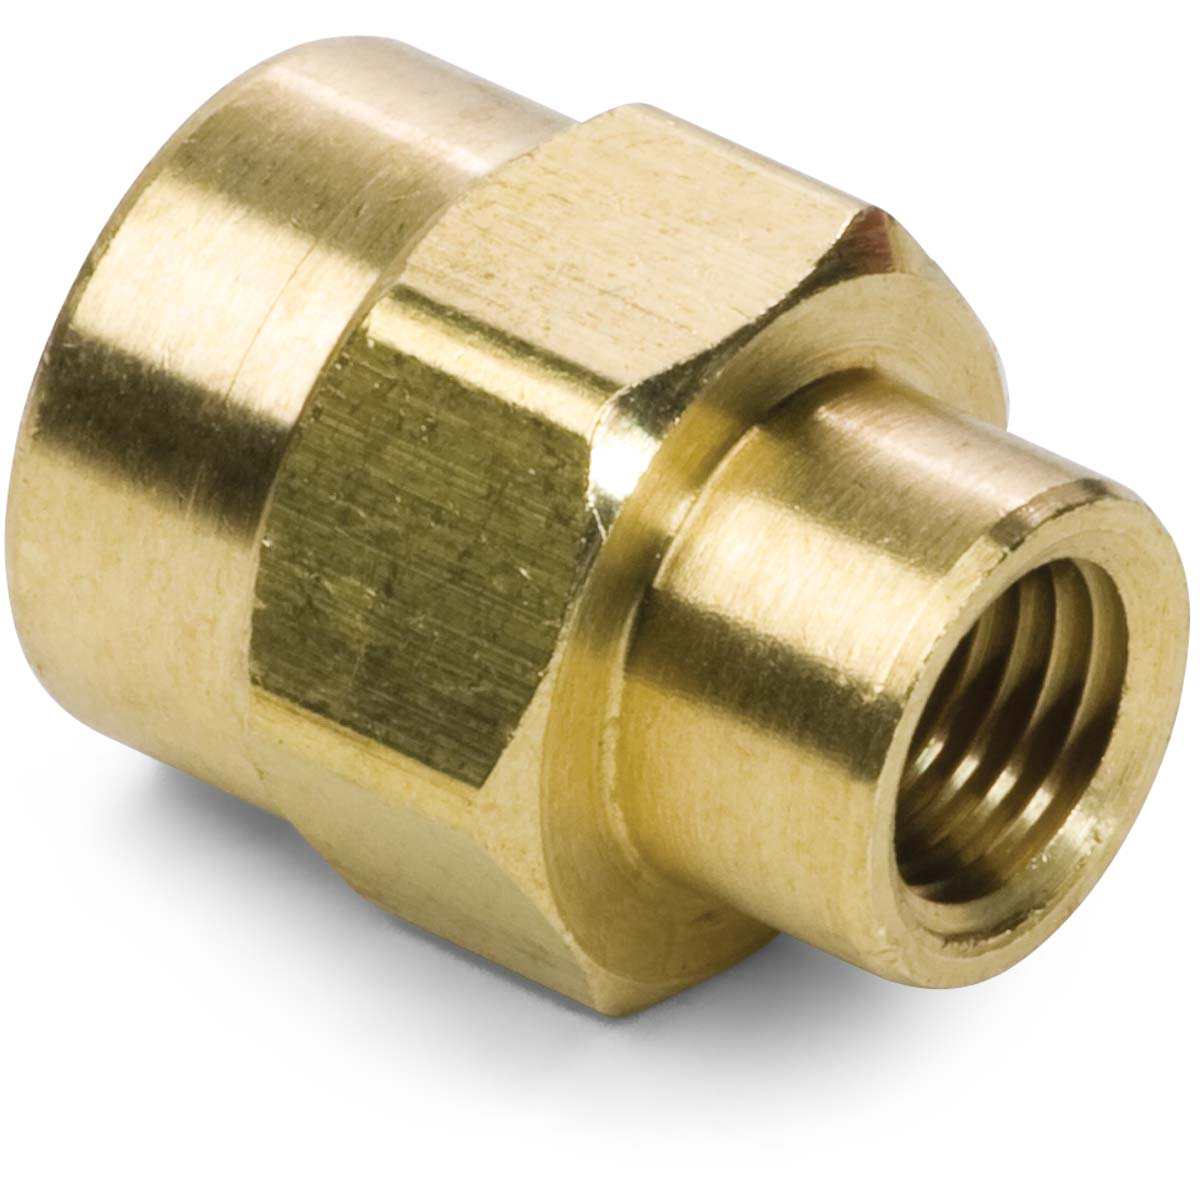 Brass pipe reducing coupling kimball midwest